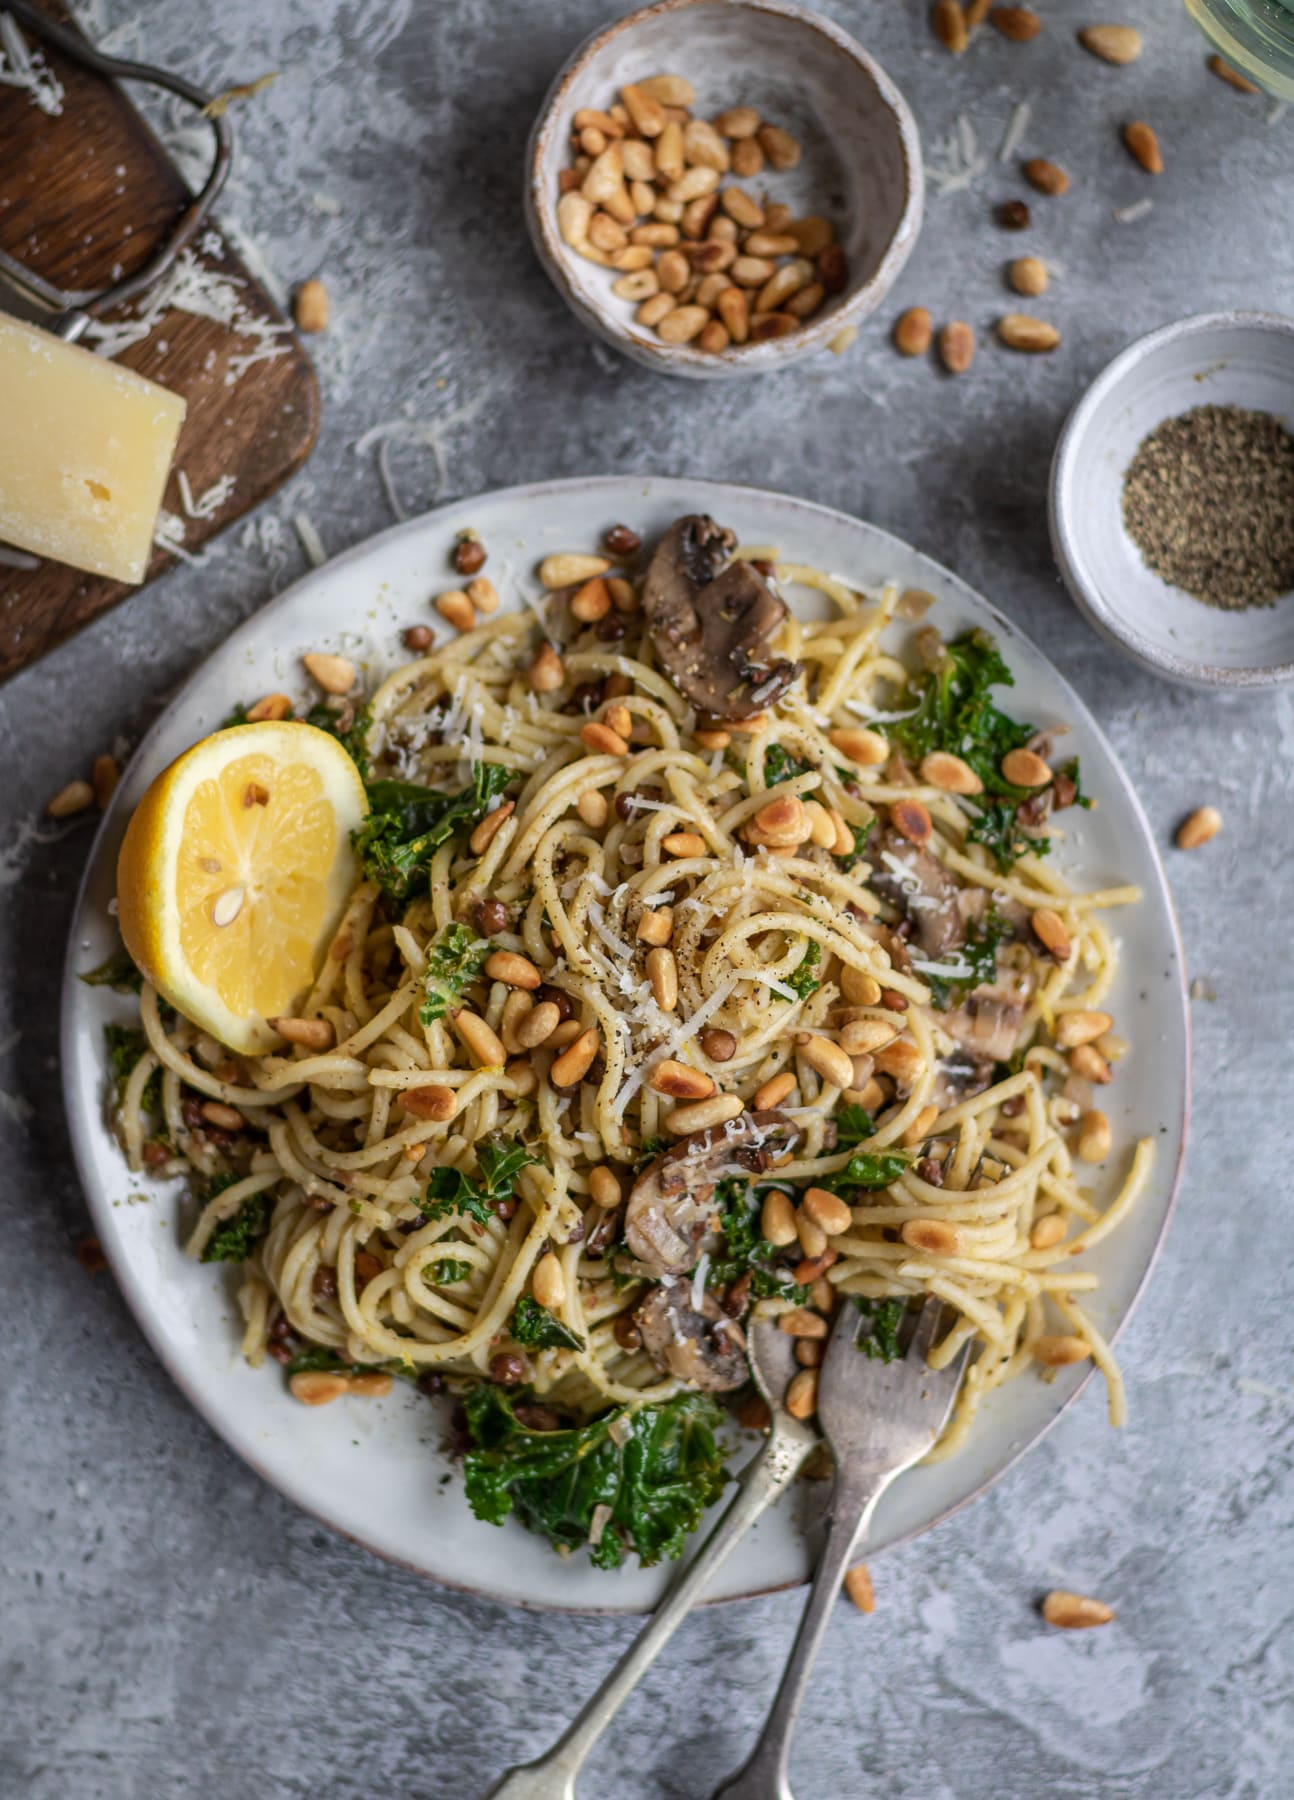 spaghetti sprinkled with pine nuts and kale